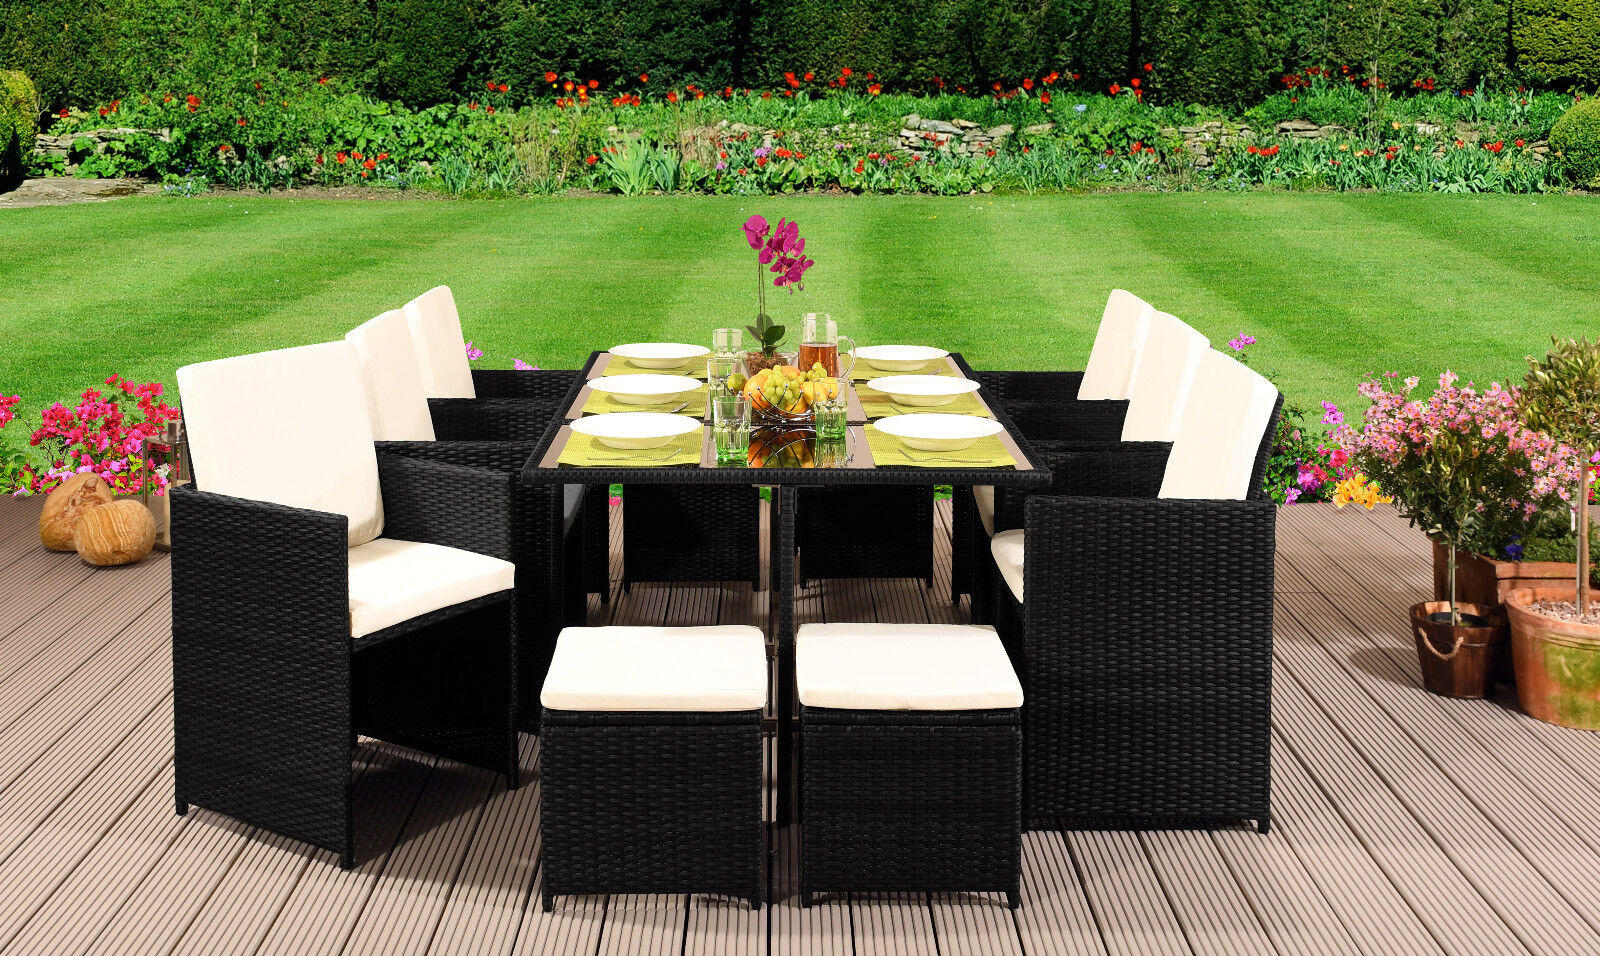 Garden Furniture - 10 Seater Rattan Outdoor Garden Furniture Set - 6 Chairs 4 Stools & Dining Table